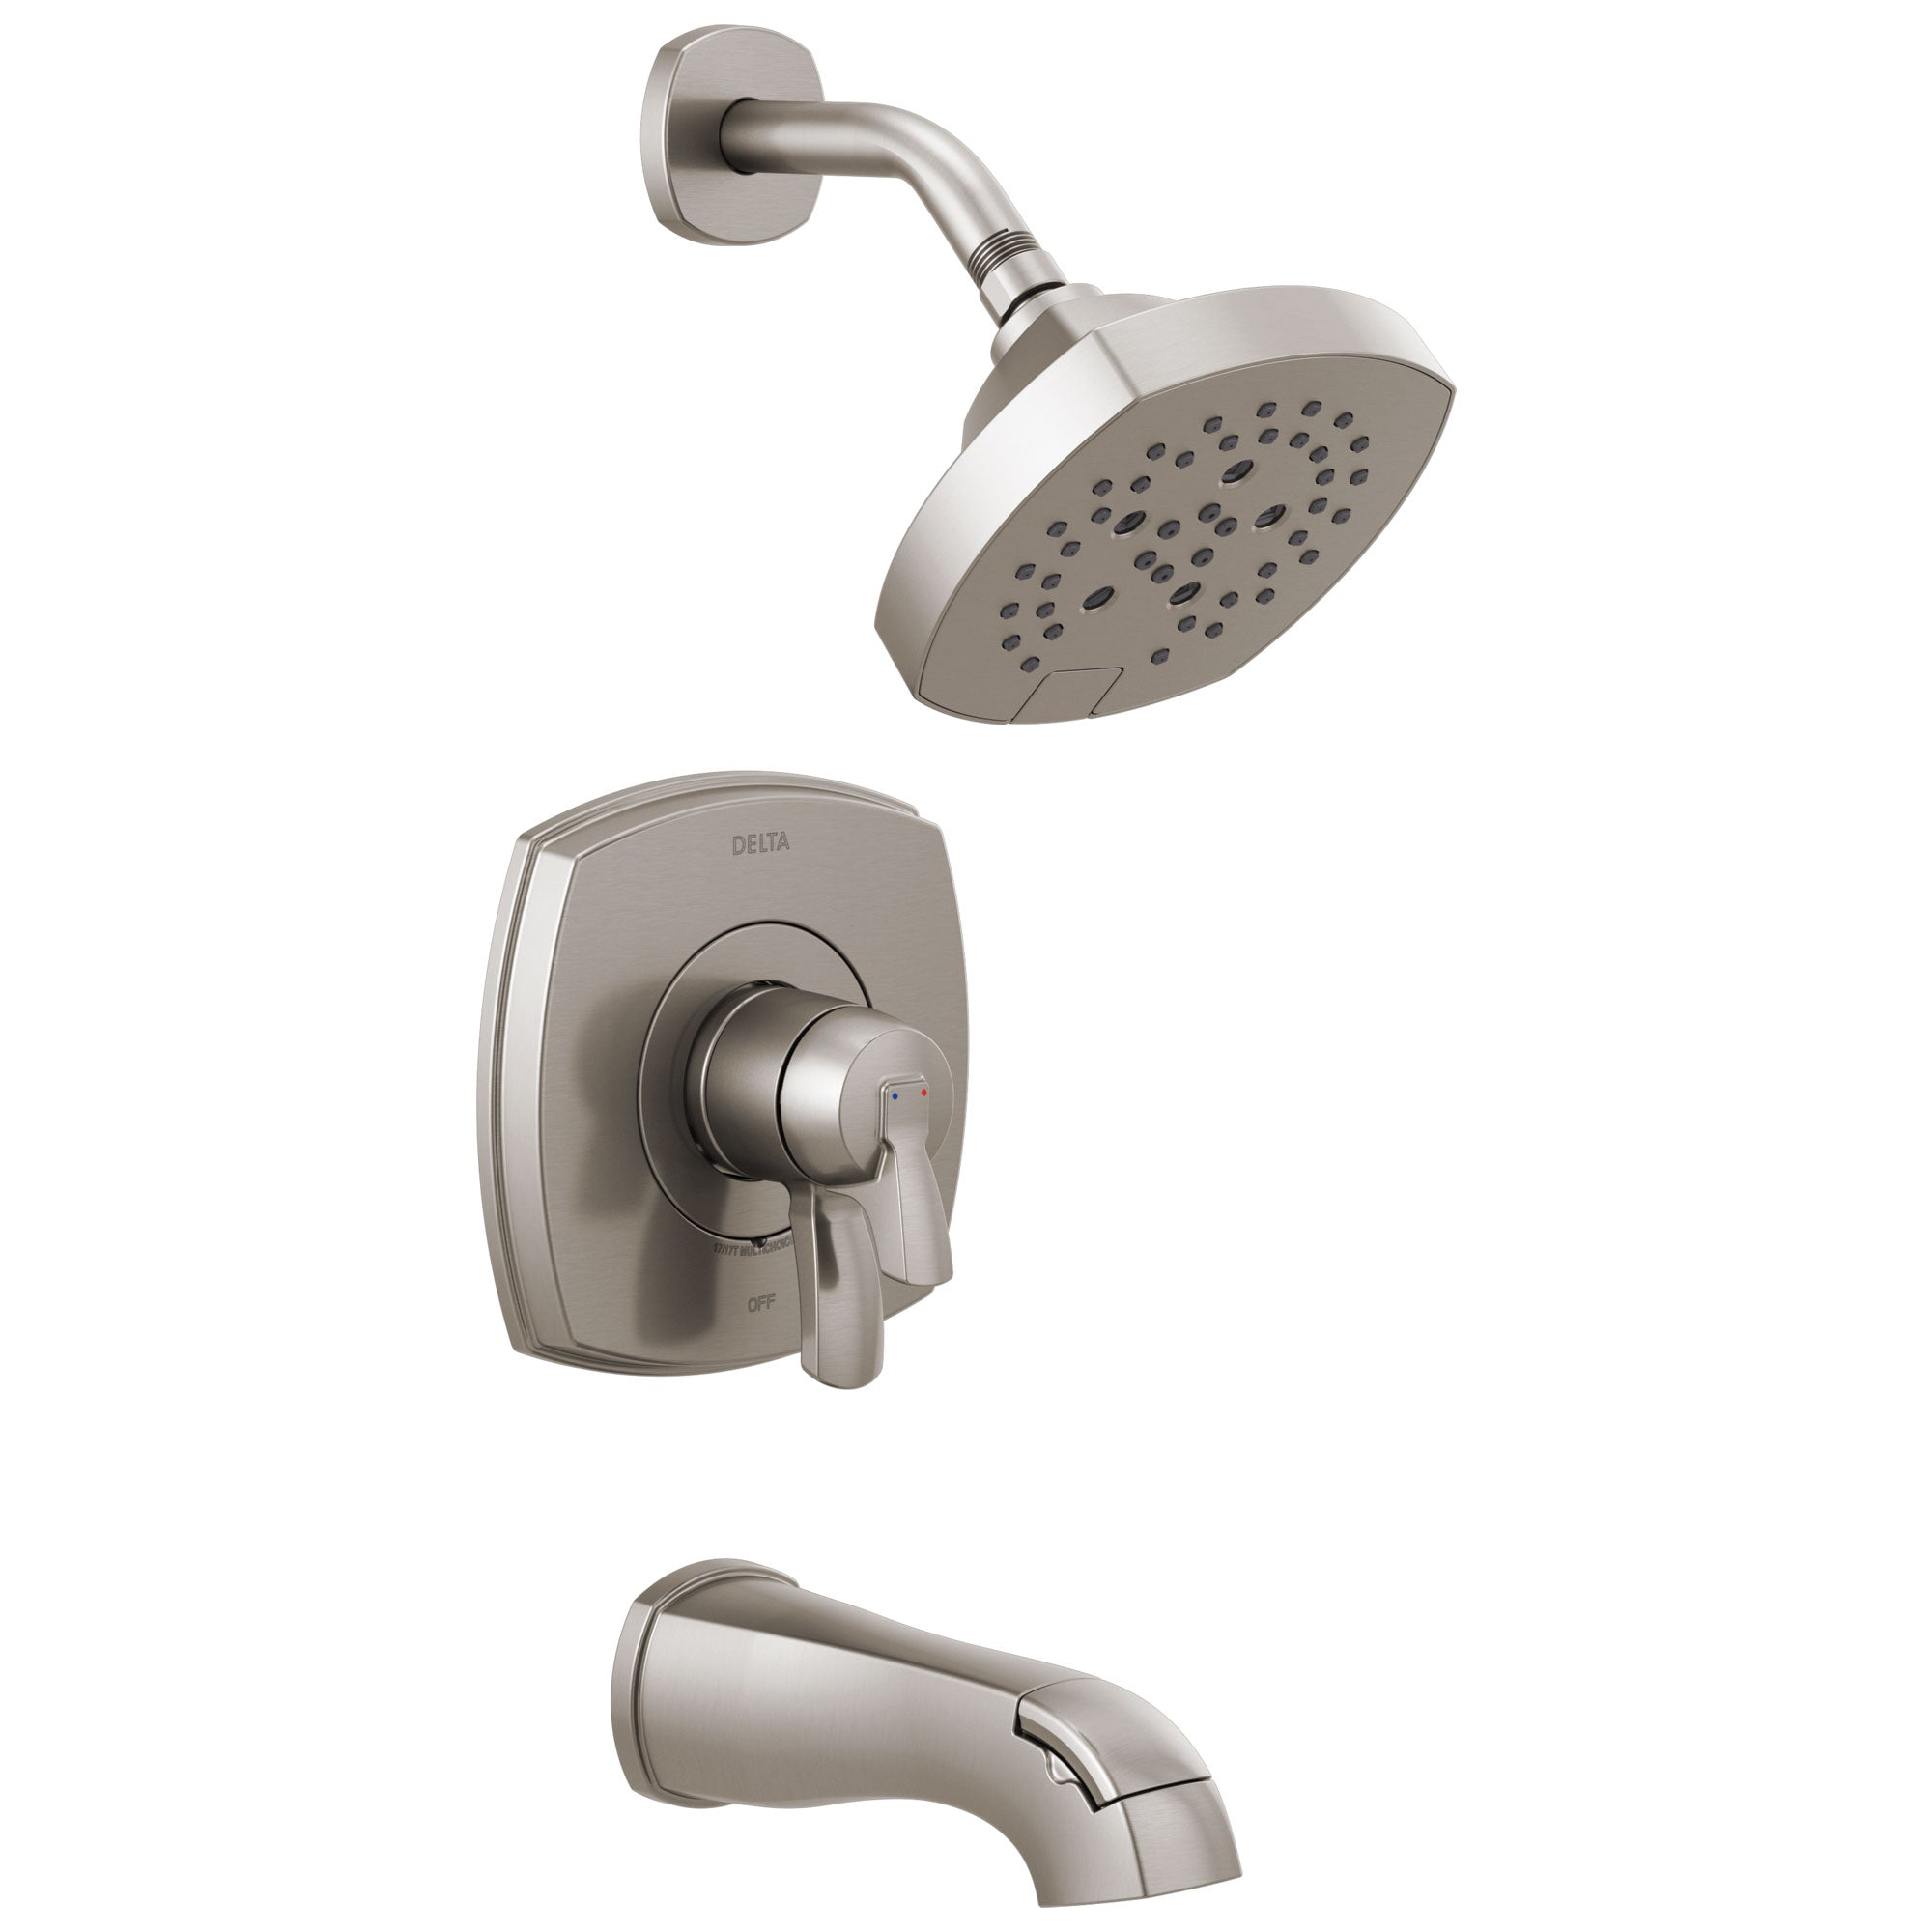 Delta Stryke Stainless Steel Finish 17 Series Tub and Shower Combo Faucet Includes Handles, Cartridge, and Rough Valve with Stops D3330V